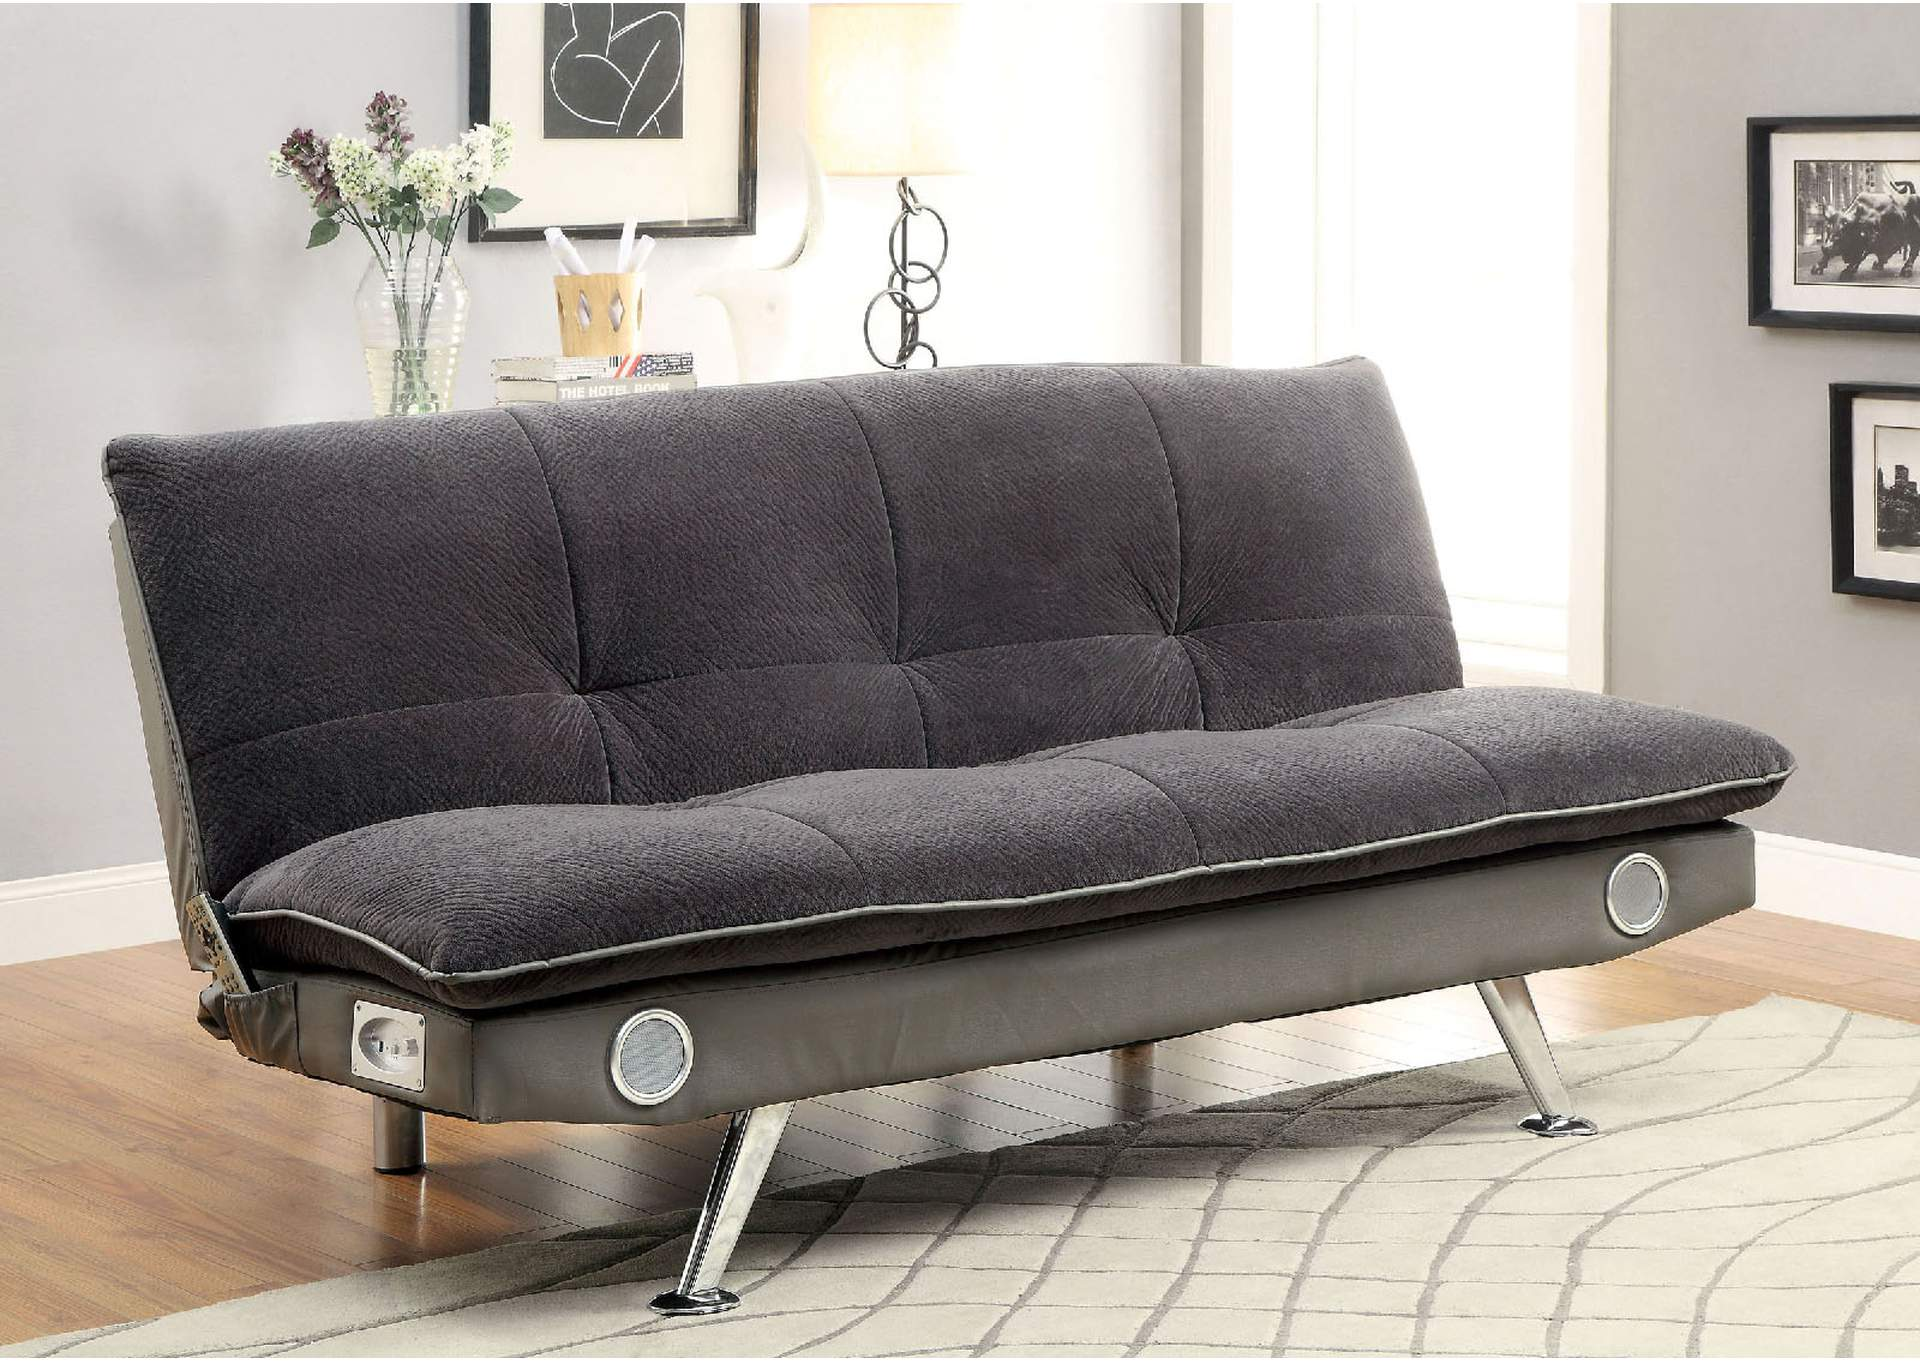 Gallagher Gray Futon Sofa w/Bluetooth Speaker,Furniture of America